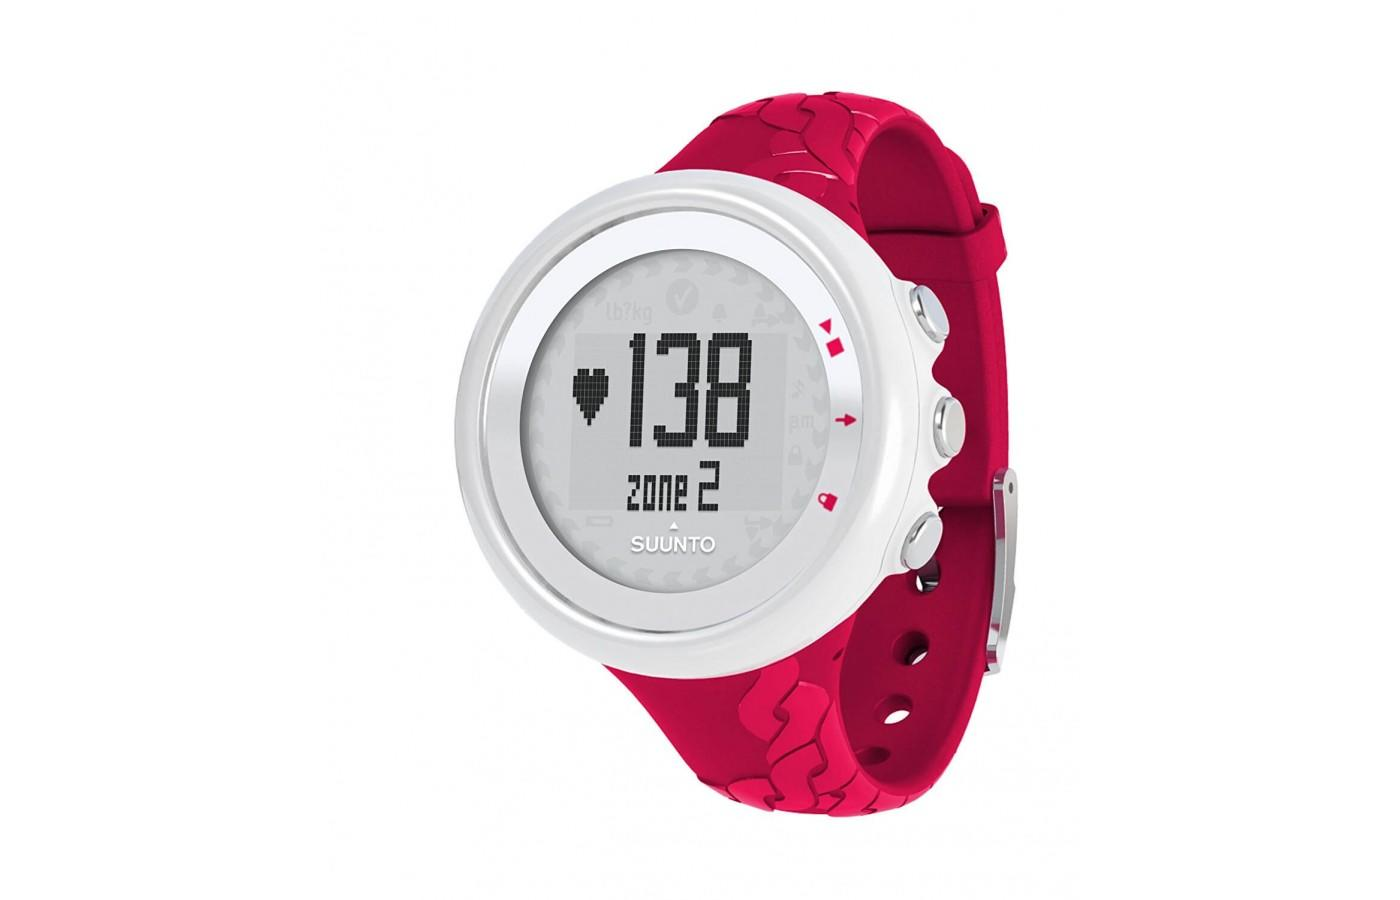 The suunto m2 comes in pink as well